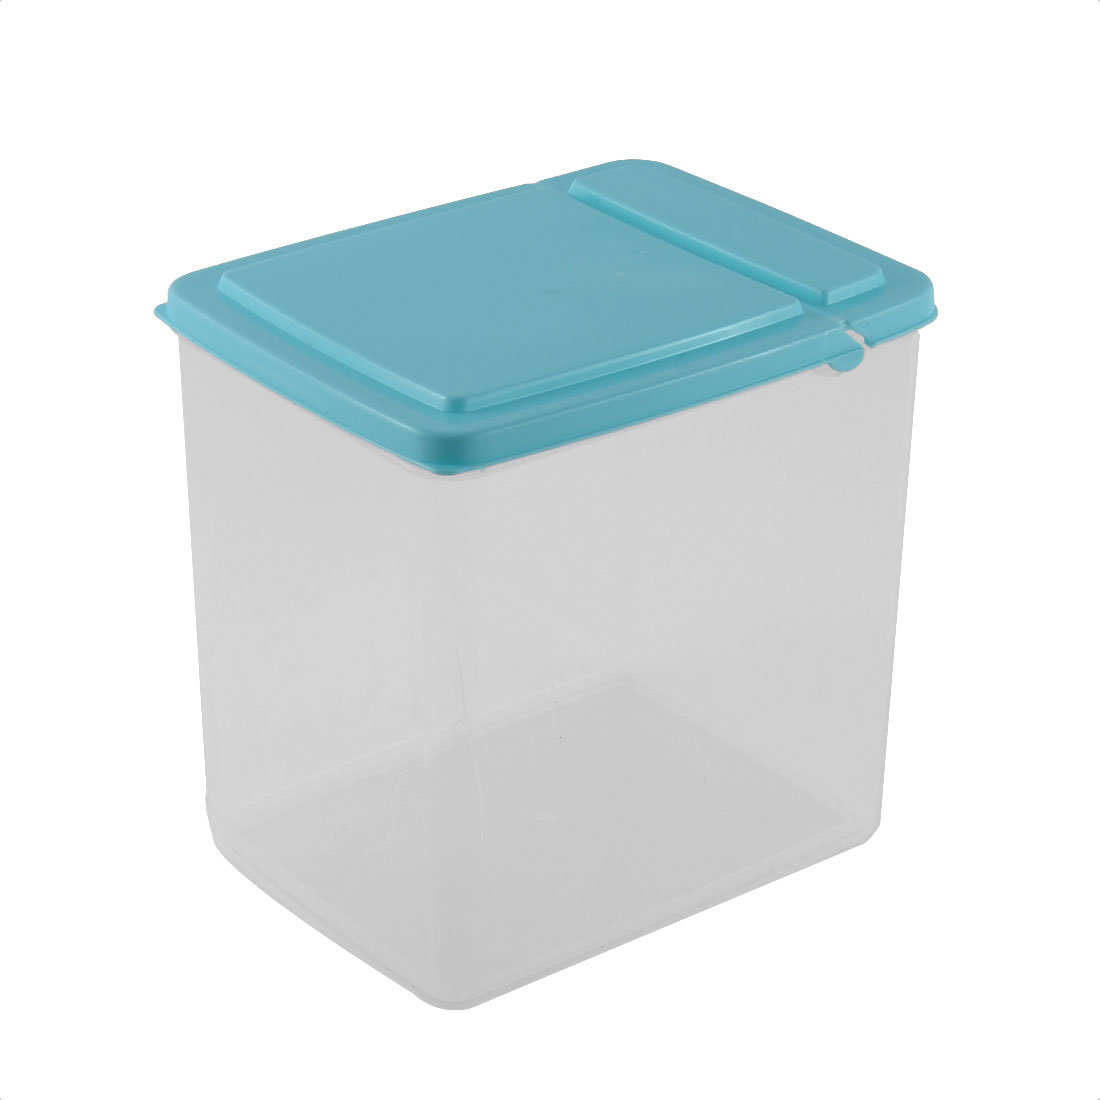 Kitchen Pantry Refrigerator Freezer Plastic Transparent Storage Box Organizer 15x11x16cm Blue